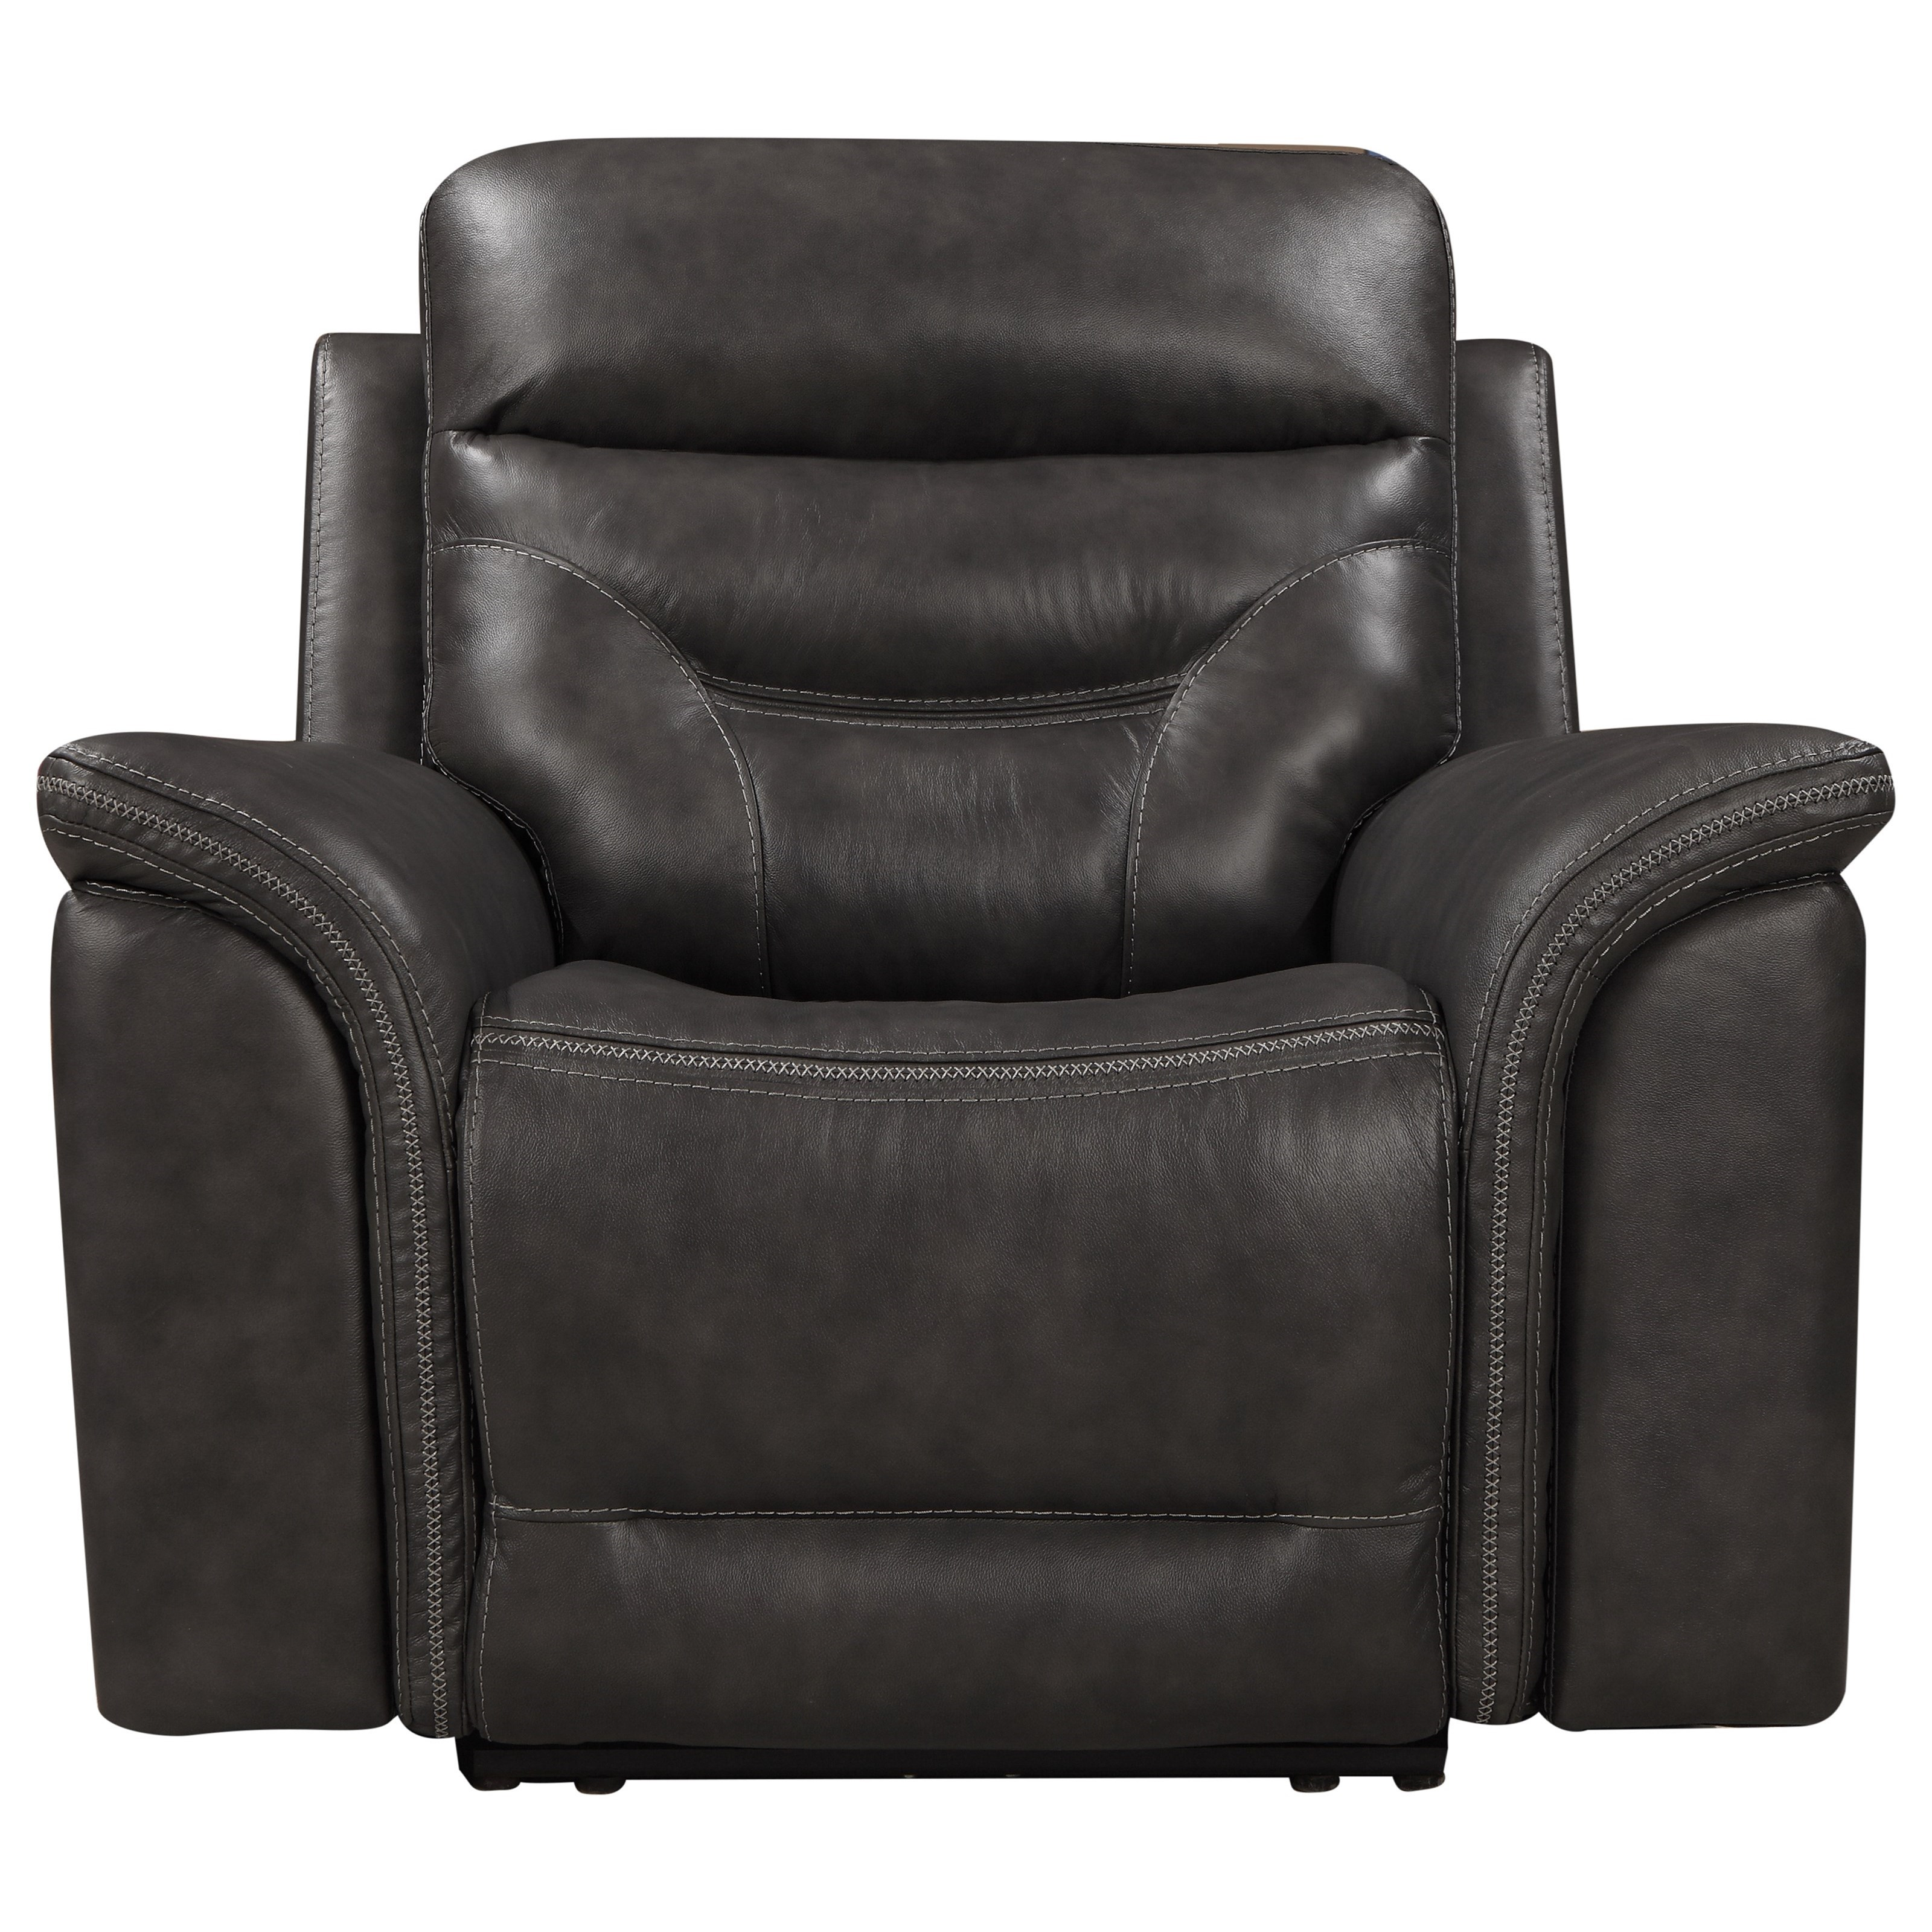 Bullard Power Recliner by Leather Italia USA at Darvin Furniture